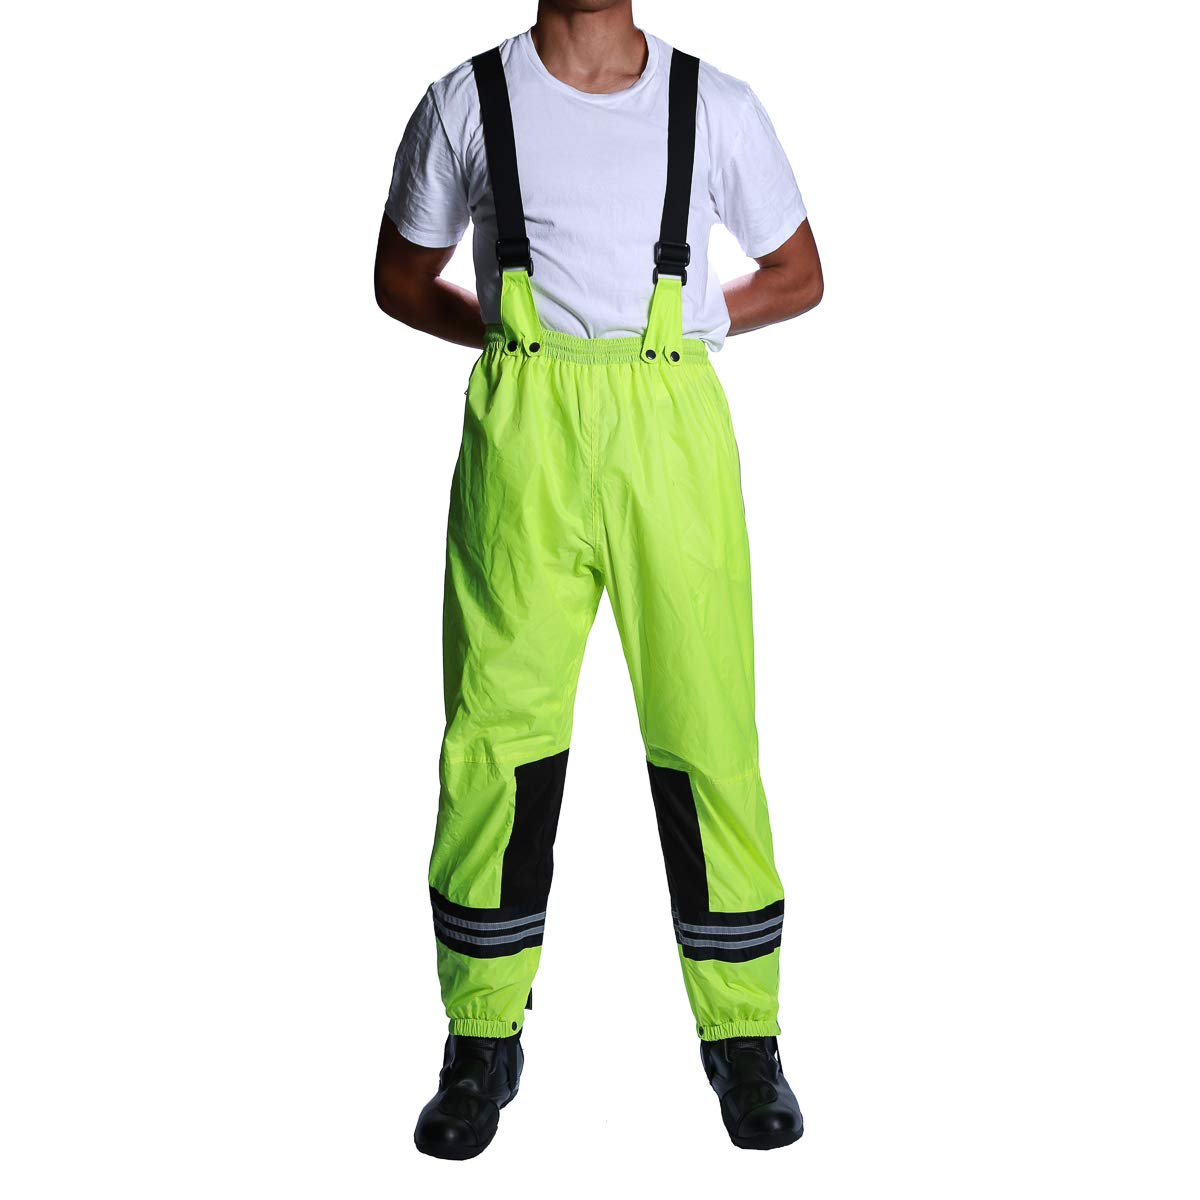 6th Gear Rain Pants (Hi Viz Green, Waist 28/XS)